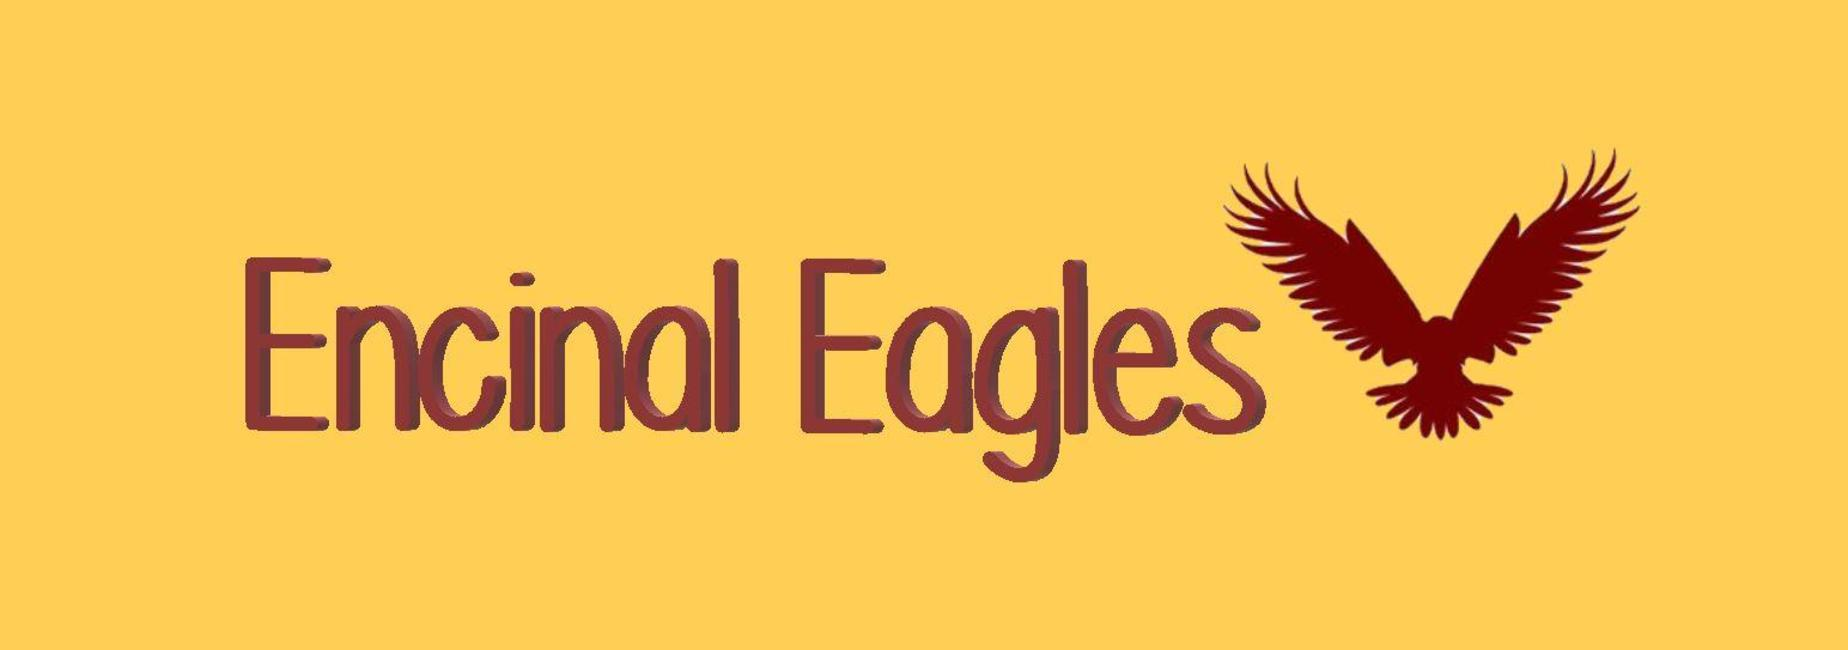 Encinal Eagles with eagle logo